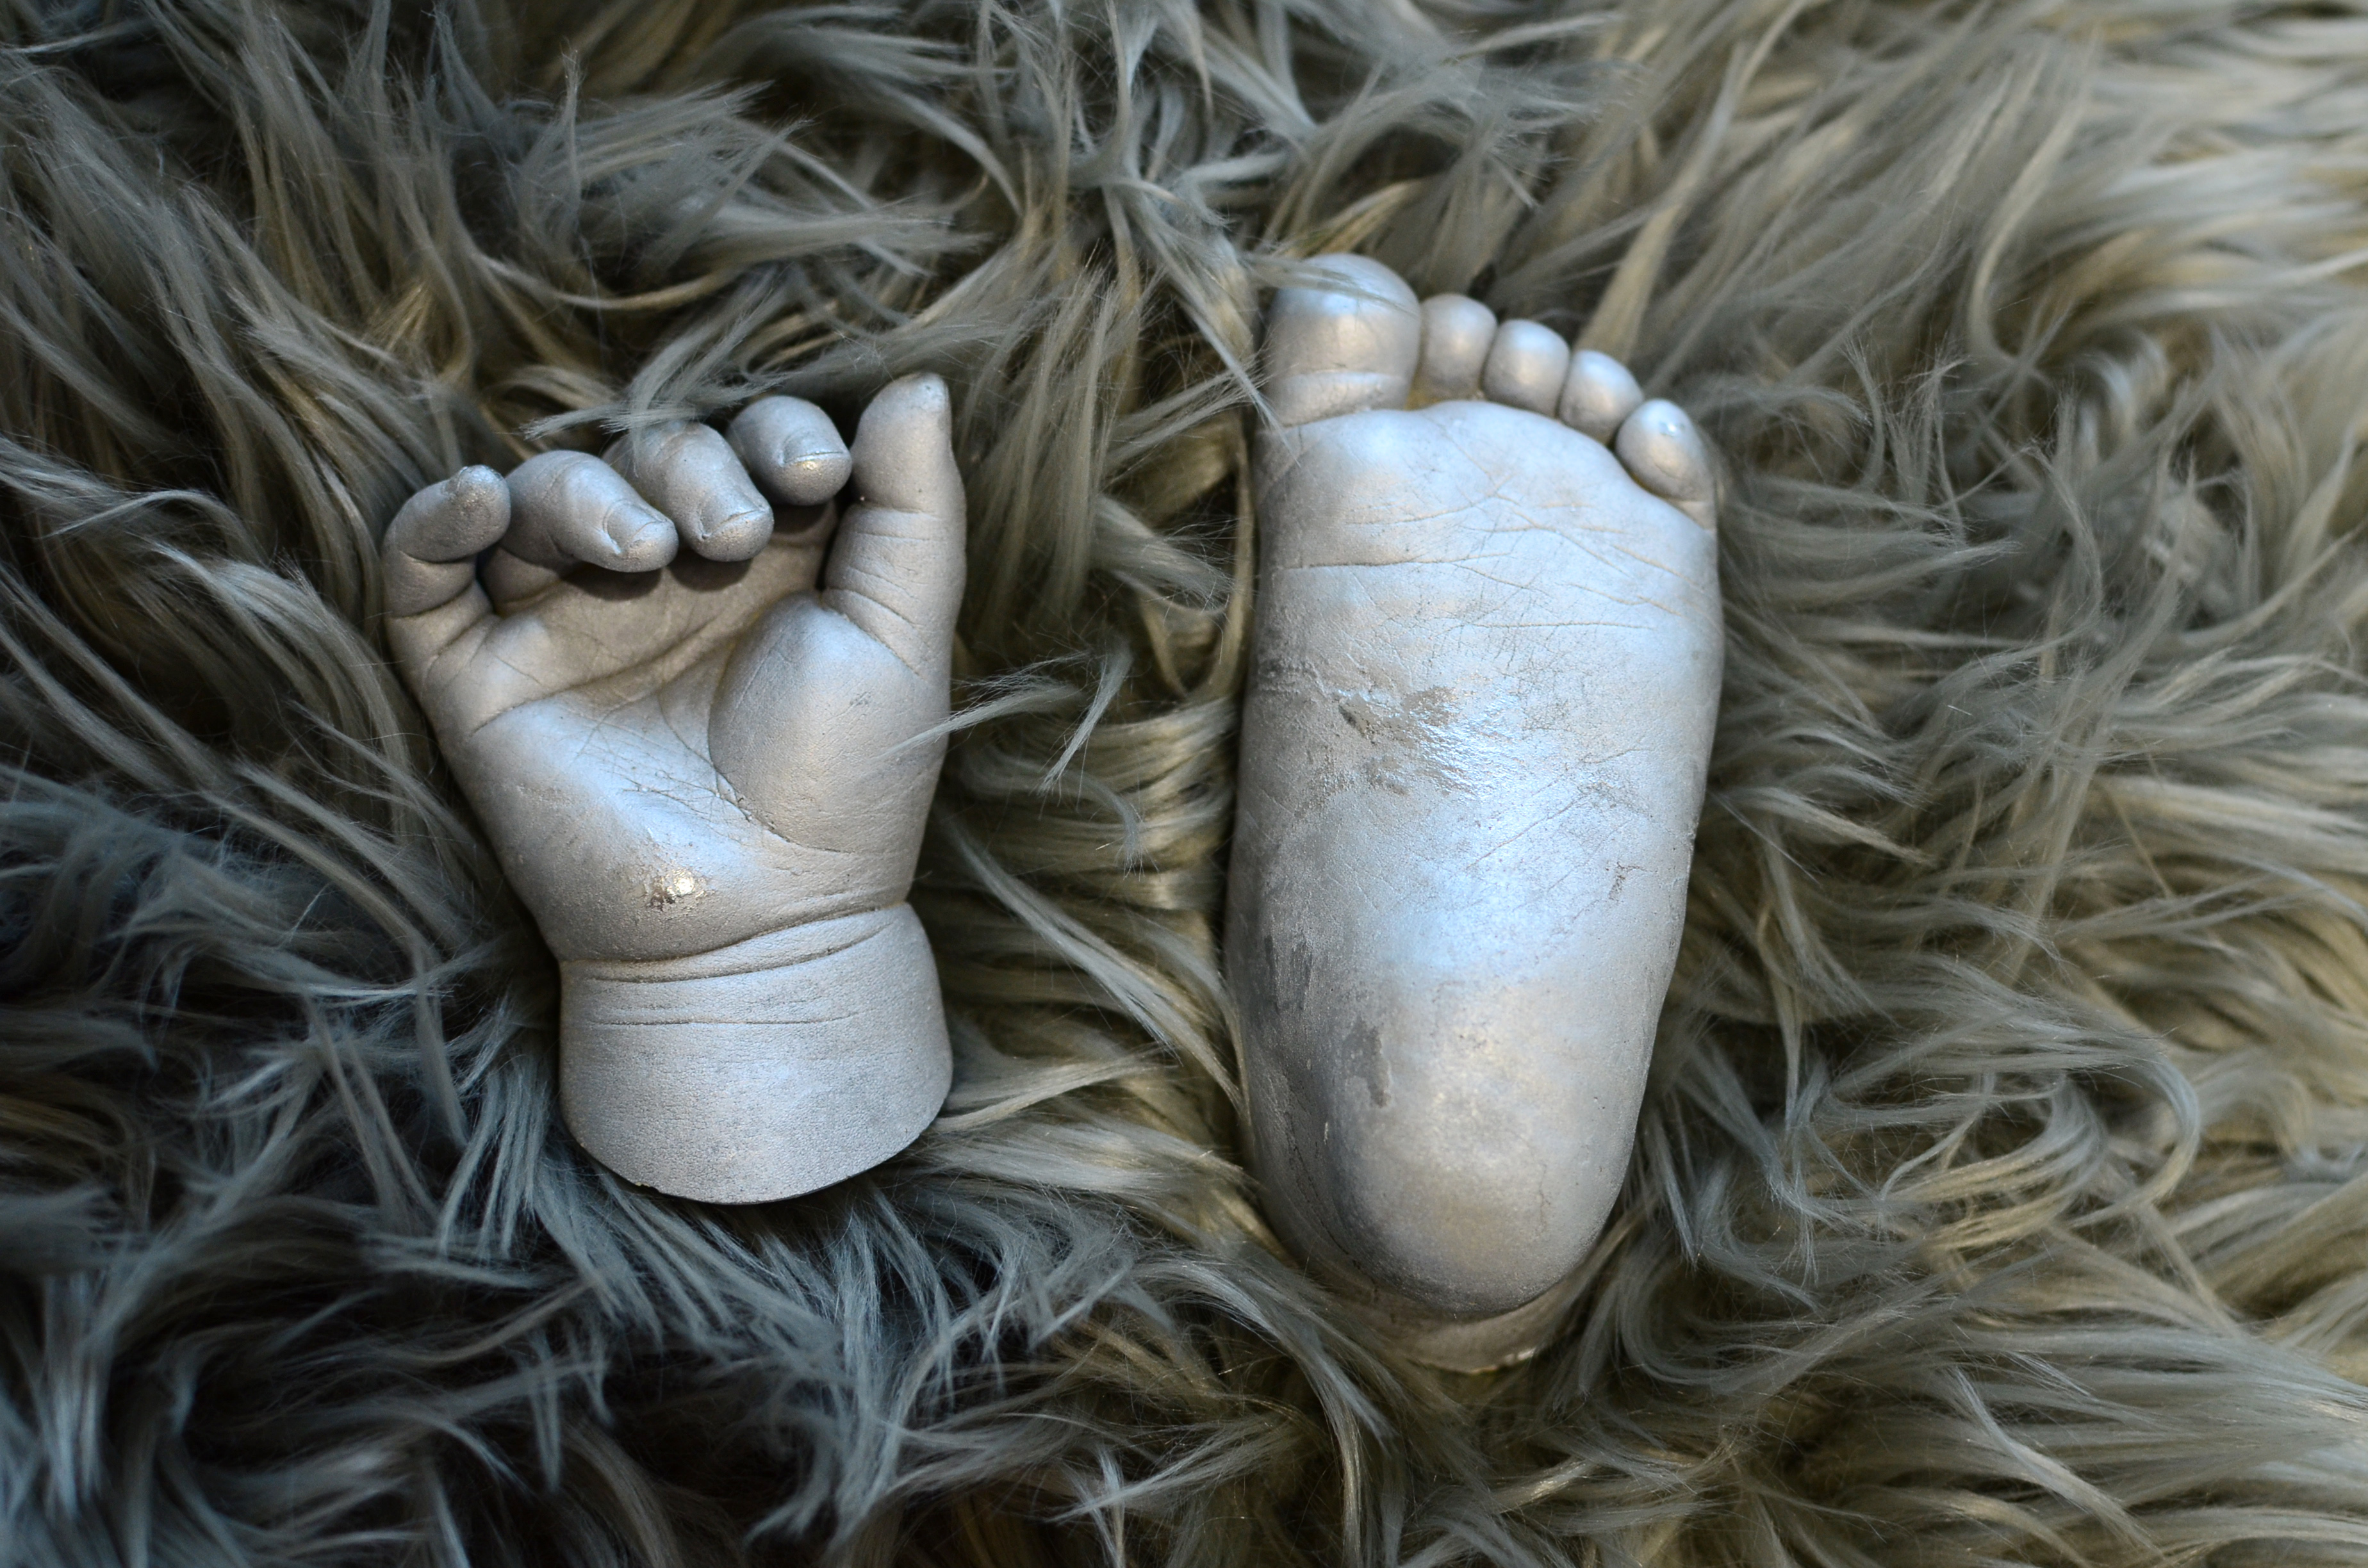 Baby's hand and foot